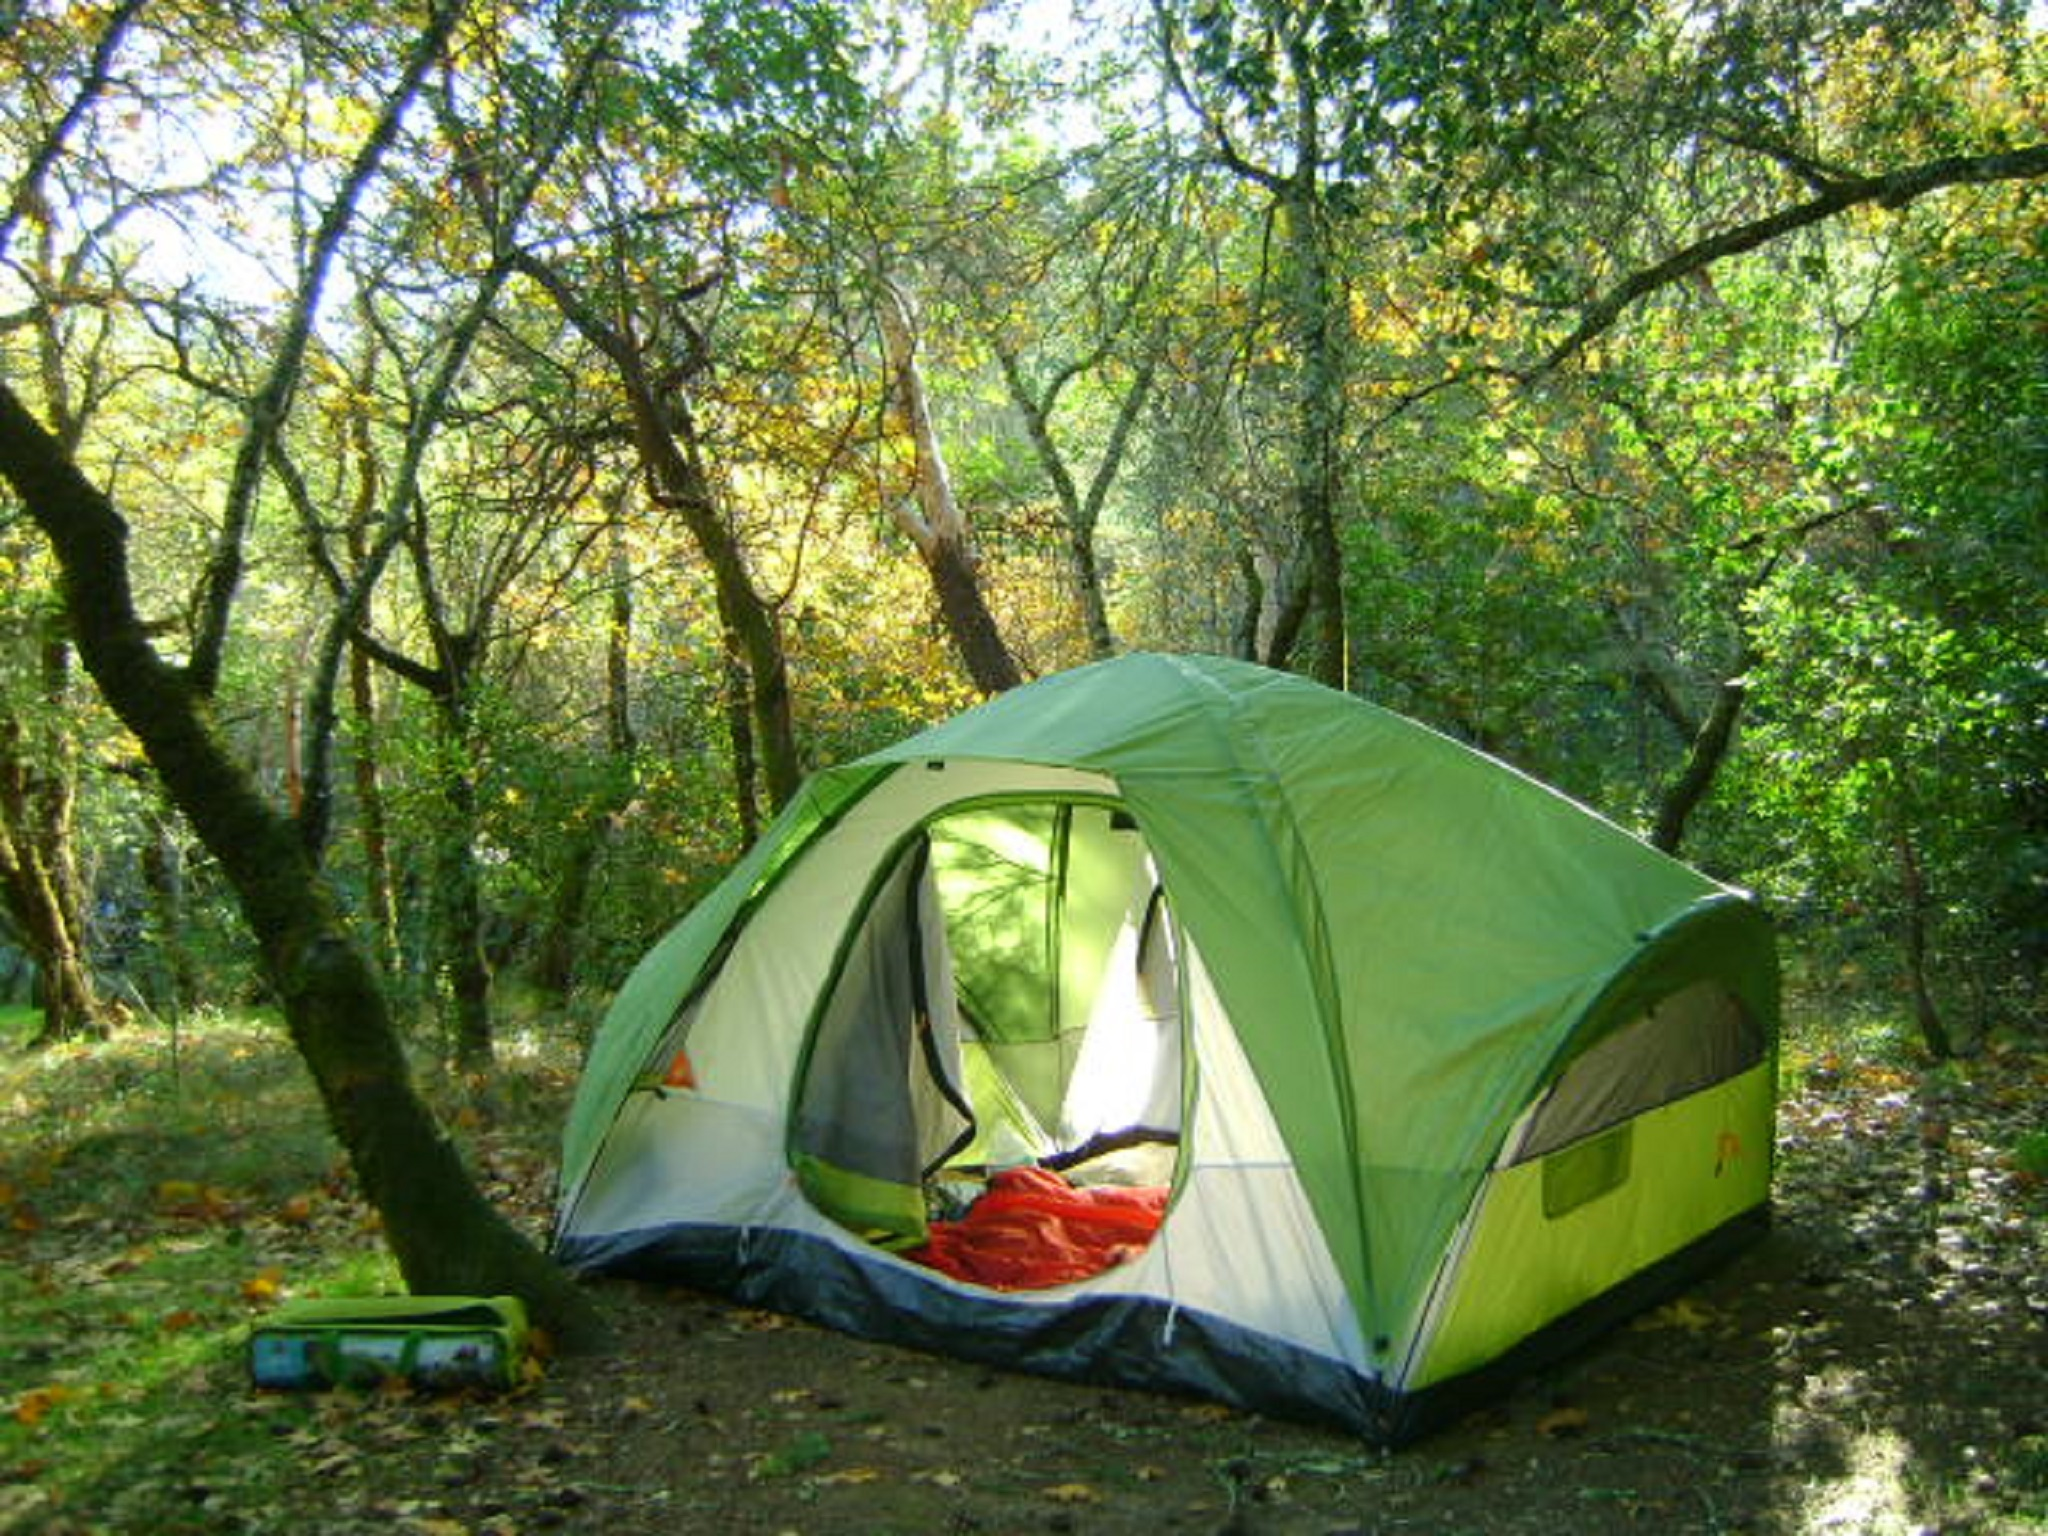 A green tent among trees